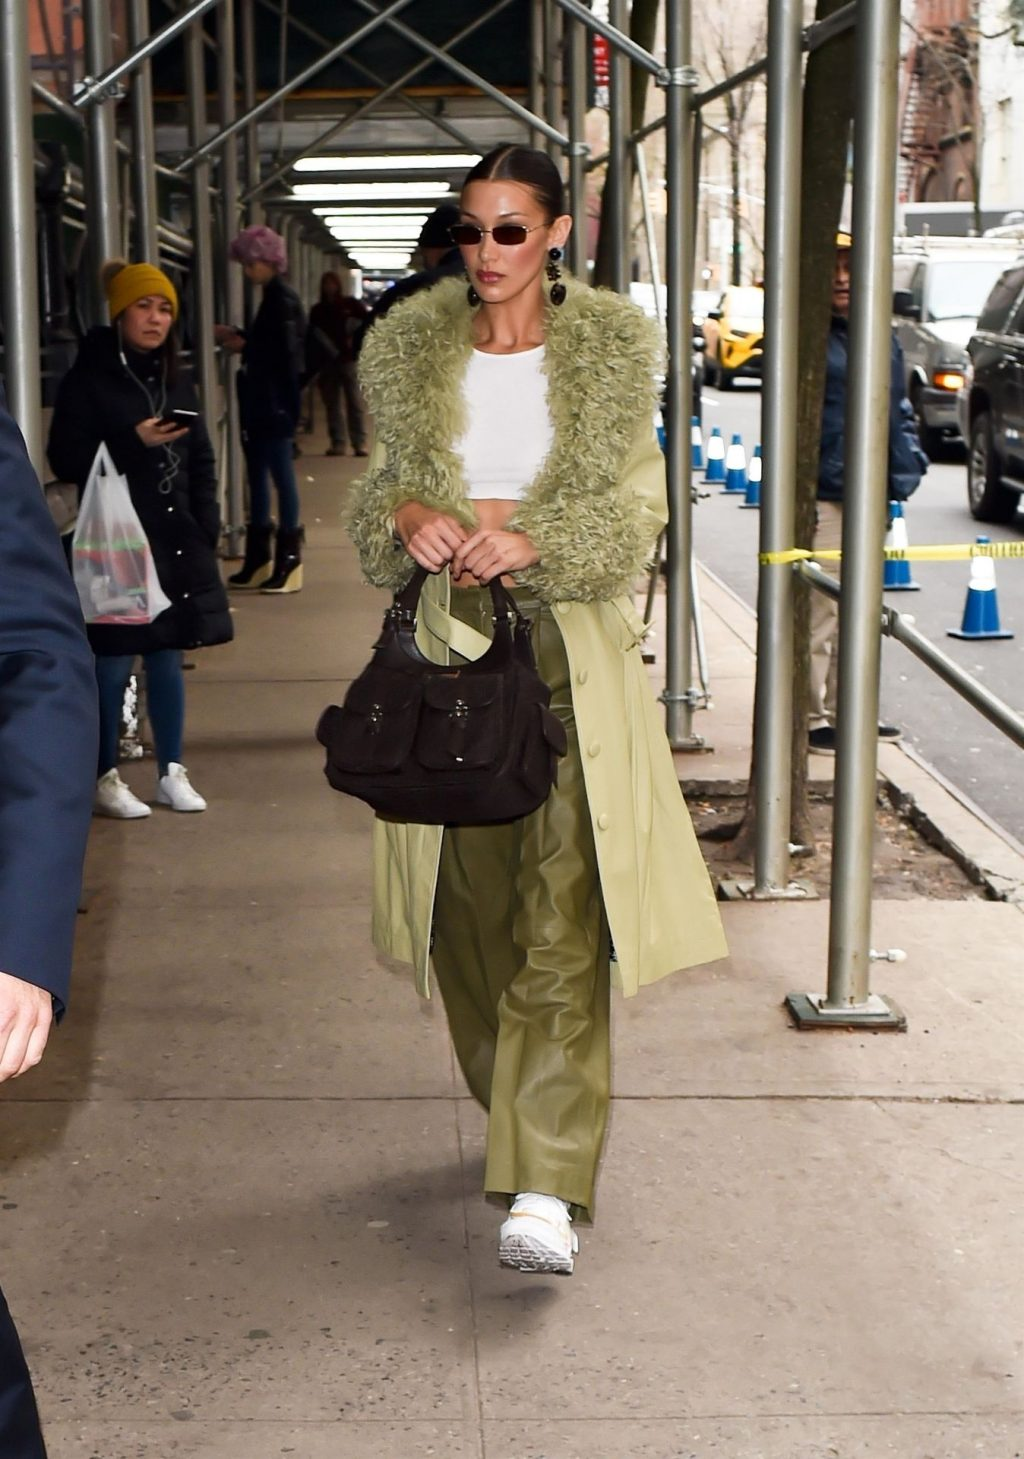 Bella Hadid See through The Fappening Blog 11 1024x1459 - Braless Bella Hadid Arrives at the Park Avenue Armory for the Marc Jacobs Fashion Show (59 Photos)